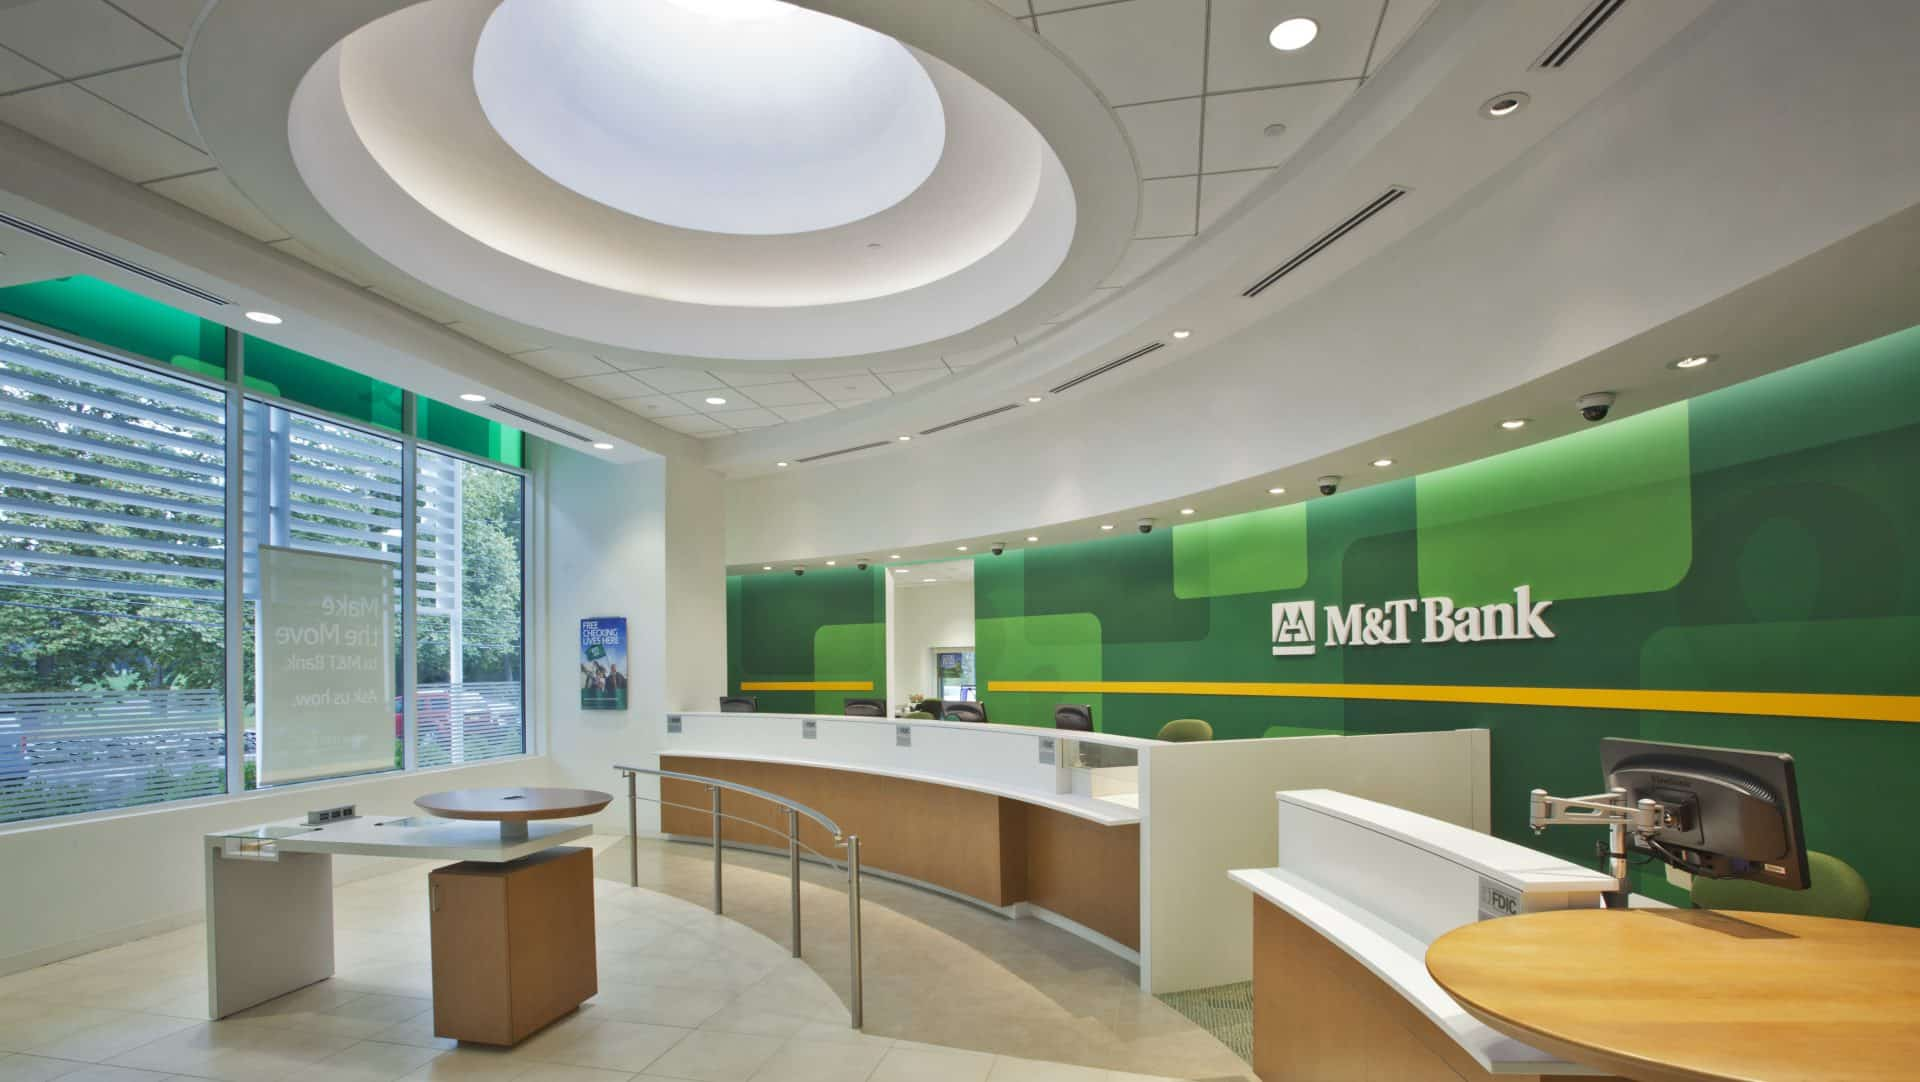 Interior view of M&T Bank - LEED Consulting Project